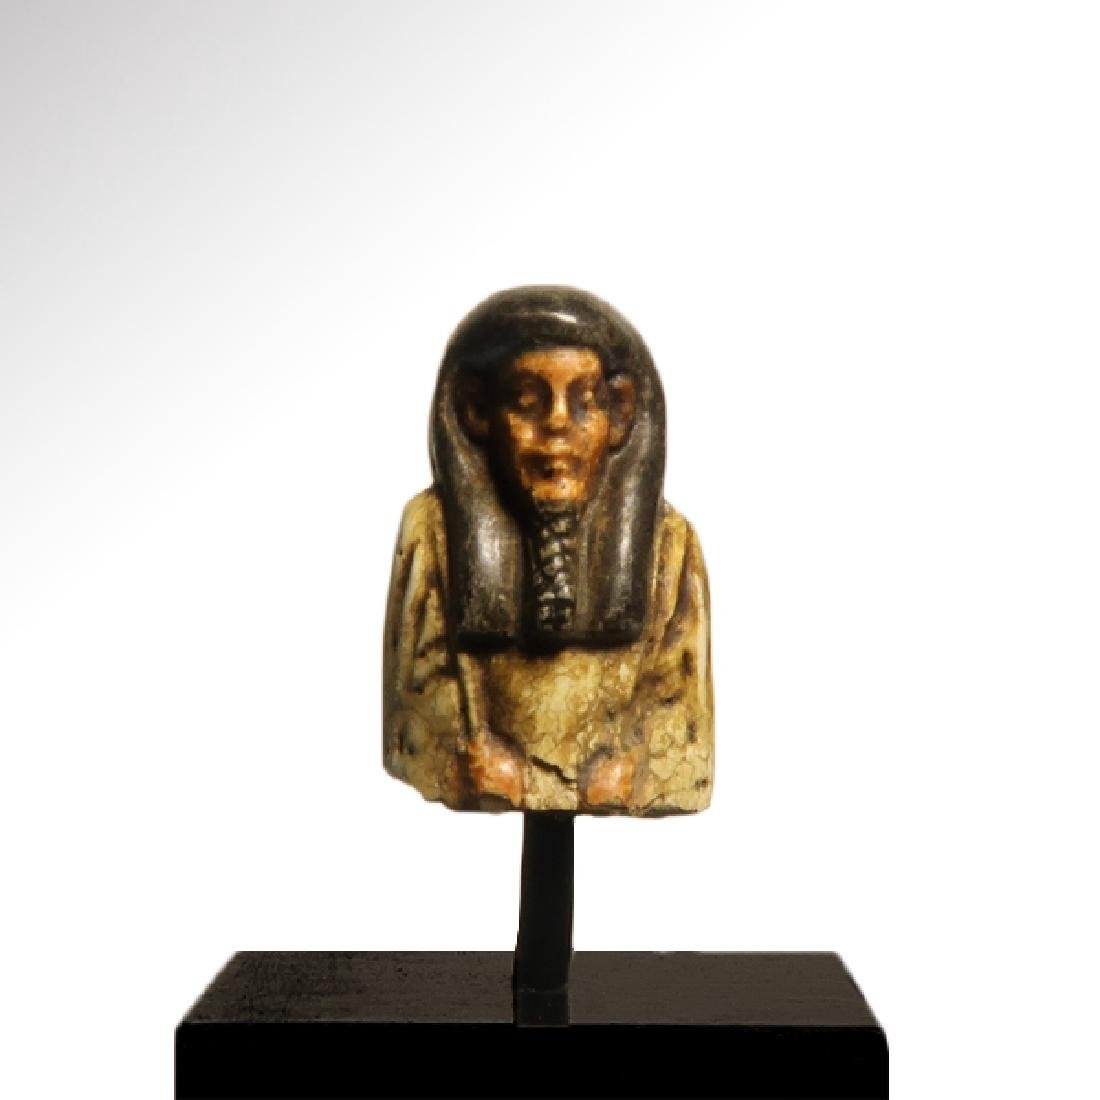 Egyptian Polychrome Faience Bust of a Shabti, c. 300